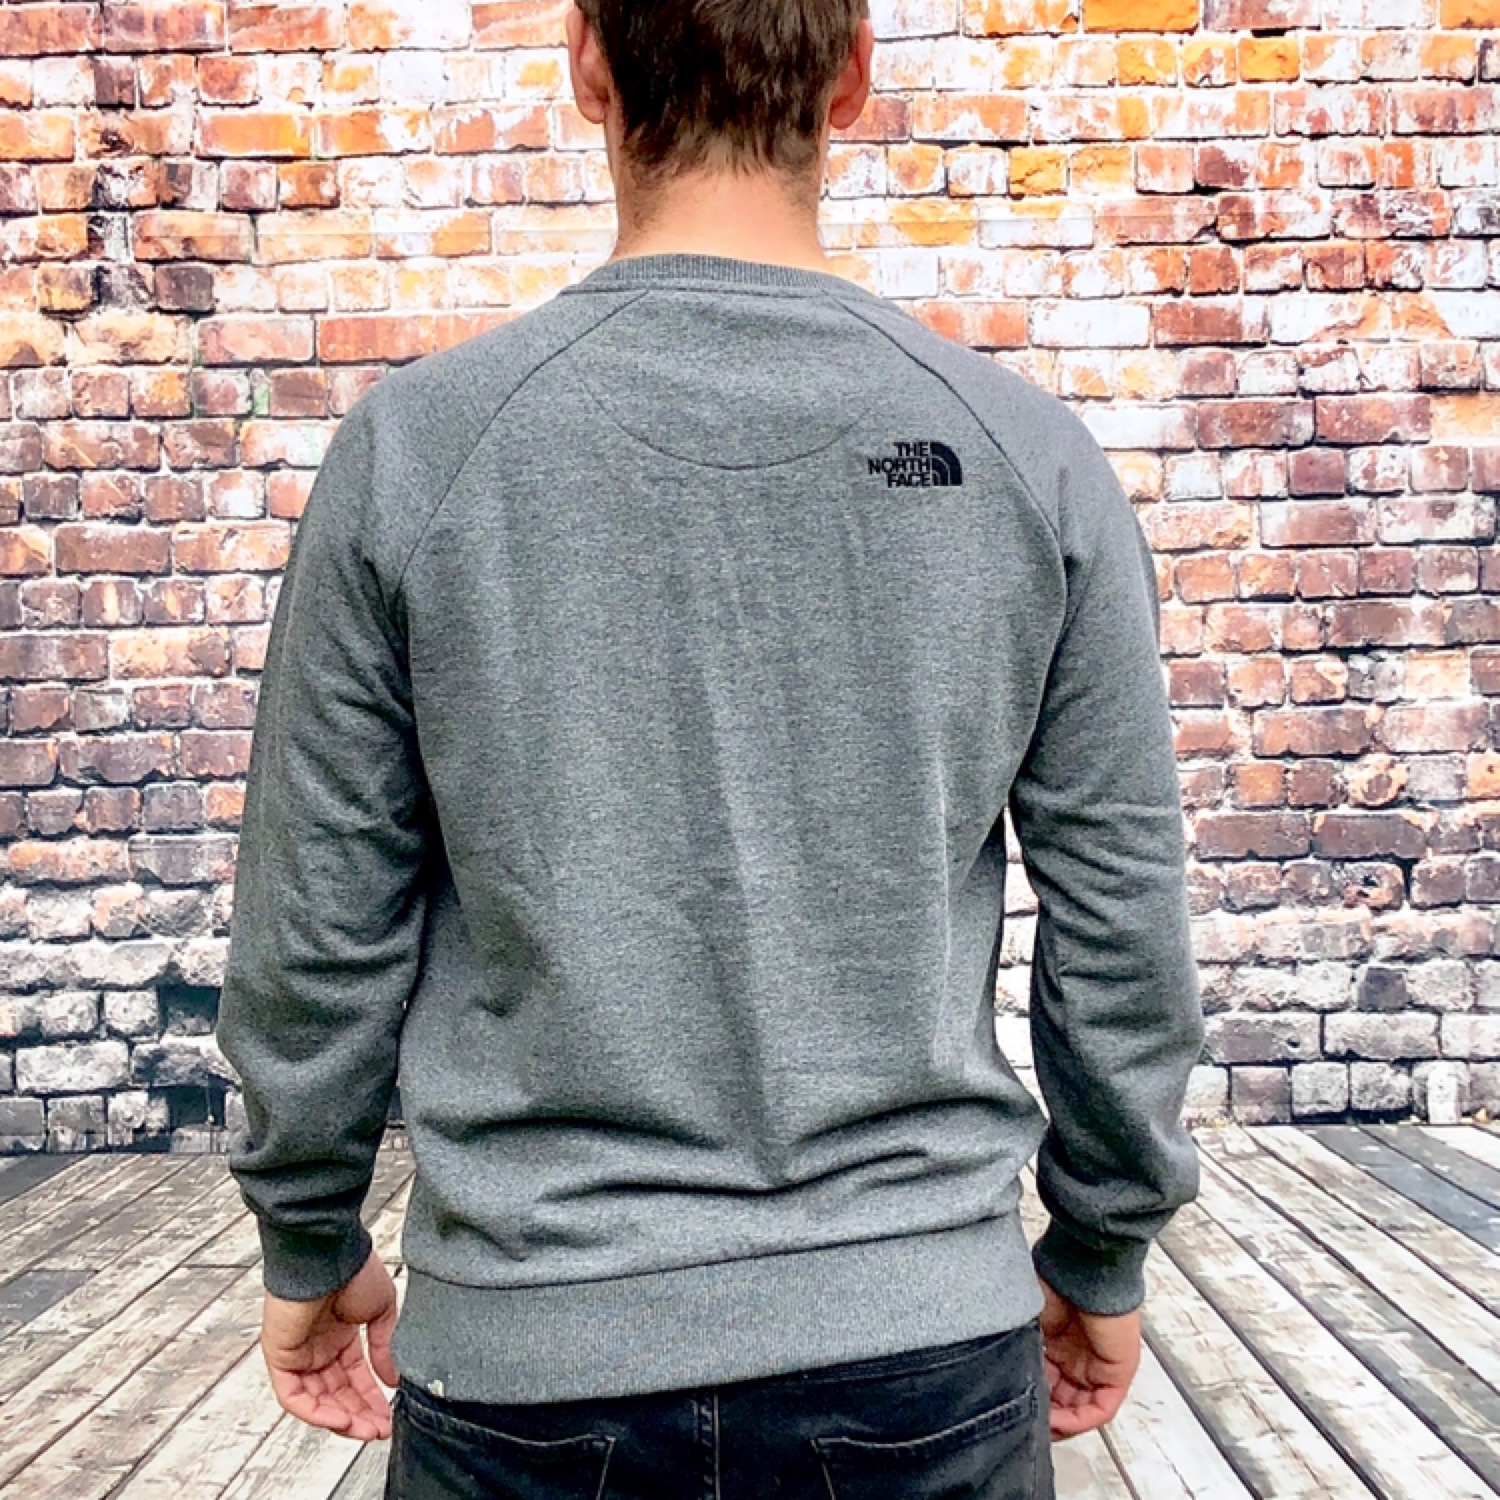 7acb41bbe Brand New Grey The North Face Jumper / Sweater